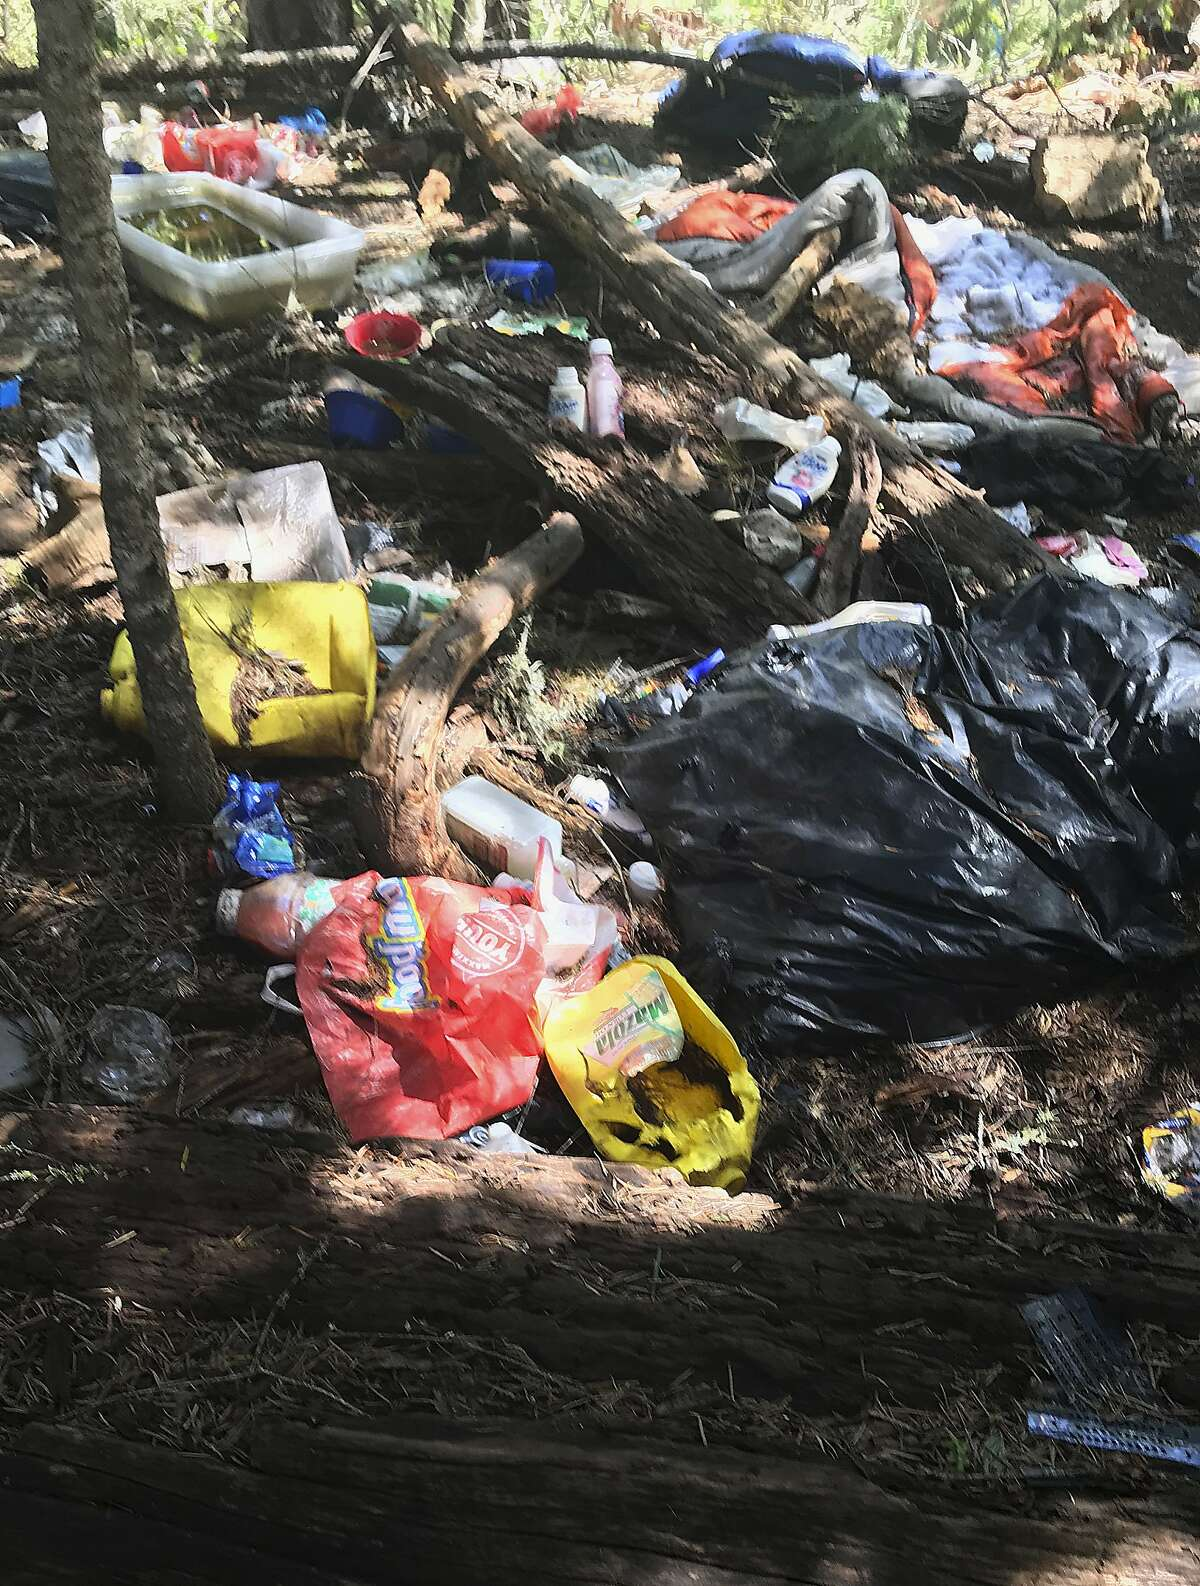 This Thursday, May 24, 2018, photo provided by the U.S. Attorney's Office shows trash found at an illegal marijuana grow site near Hayfork, Calif. Researchers and federal authorities are finding what they say is an alarming increase in the use of a powerful pesticide at illegal marijuana farms hidden on public land. (Lauren Horwood/U.S. Attorney's Office via AP)